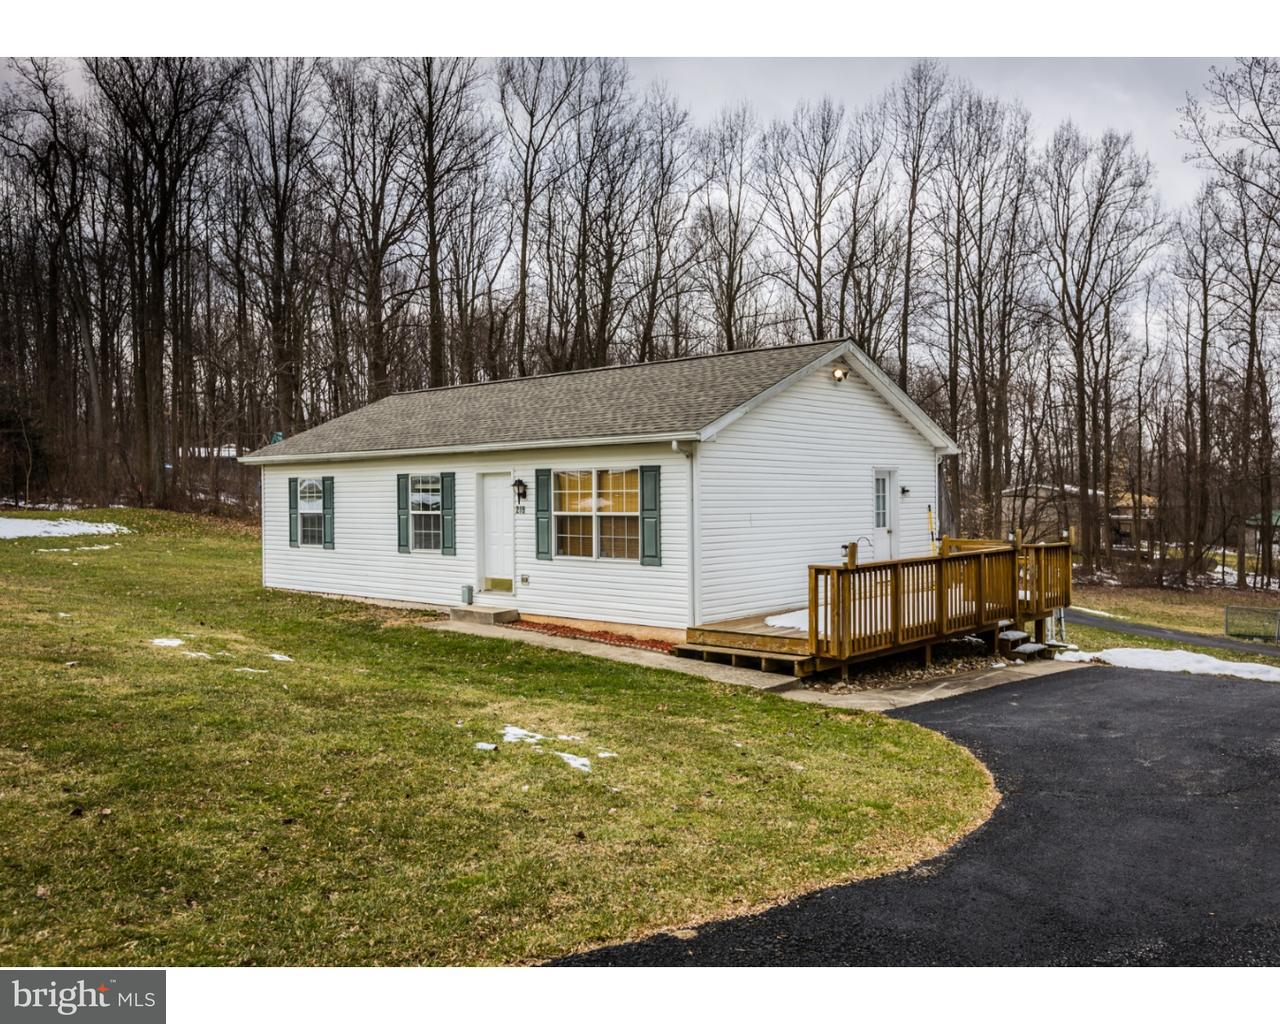 235 QUARRY RD, GAP - Listed at $249,900, GAP